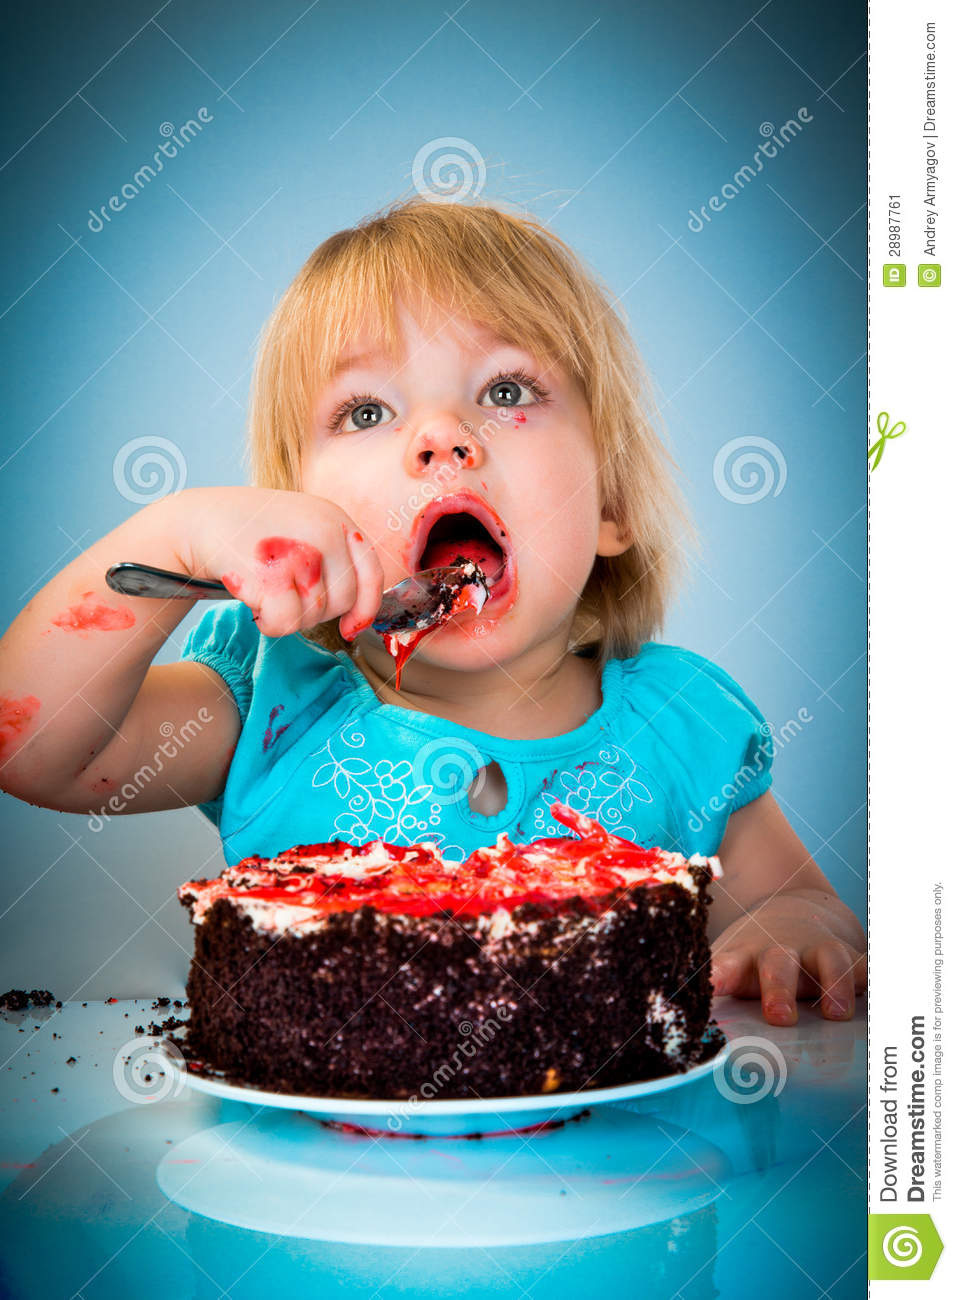 Little Baby Girl Eating Cake Stock Image - Image: 28987761